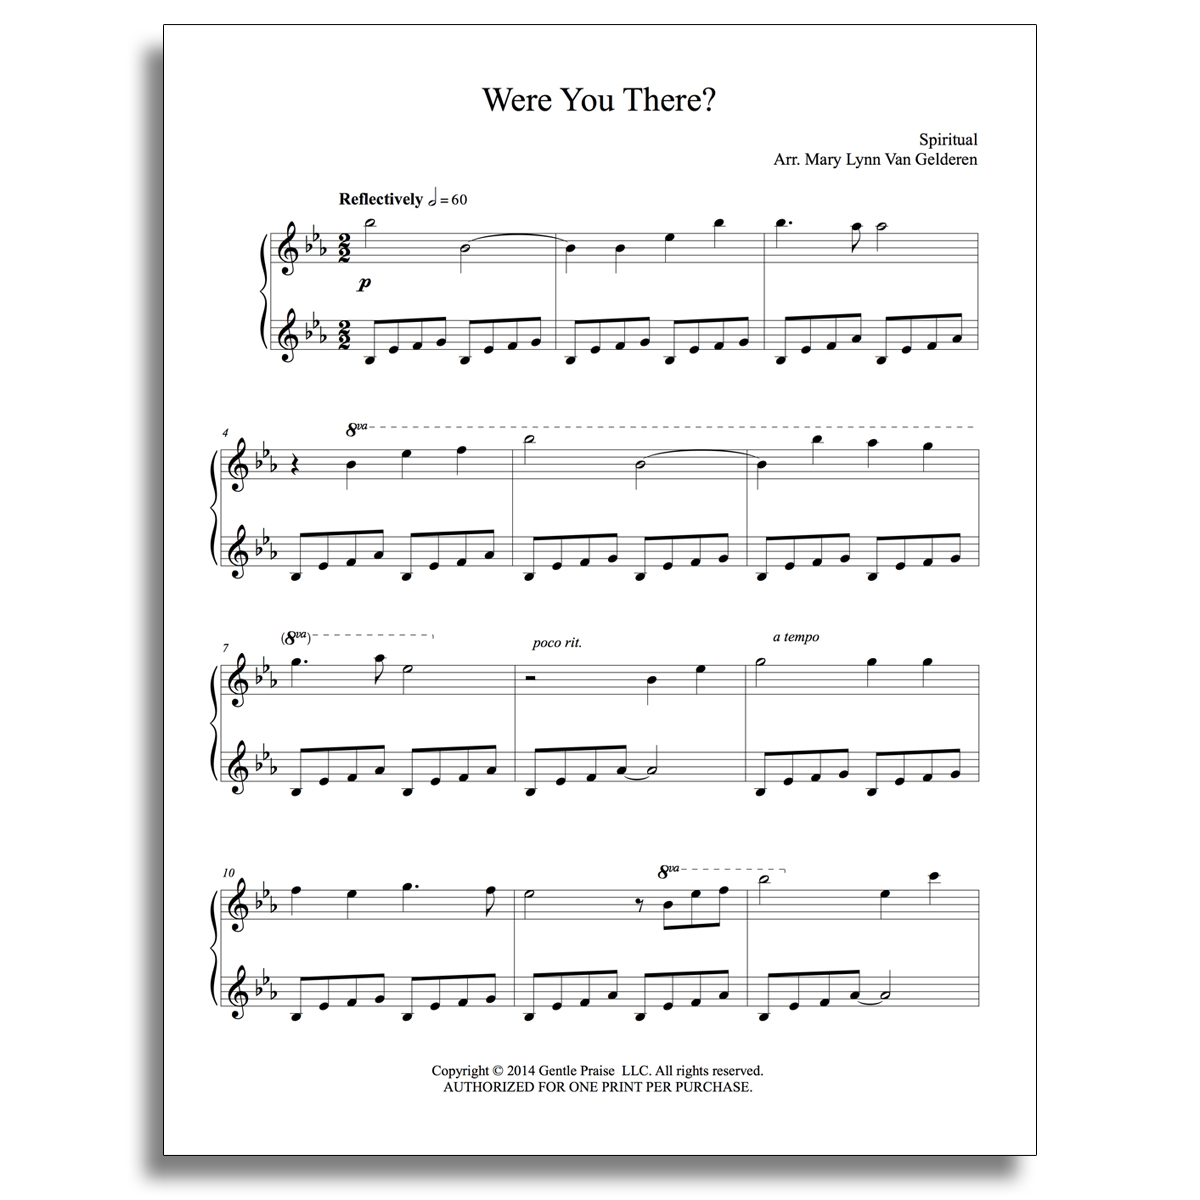 Were You There? Piano Sheet Music